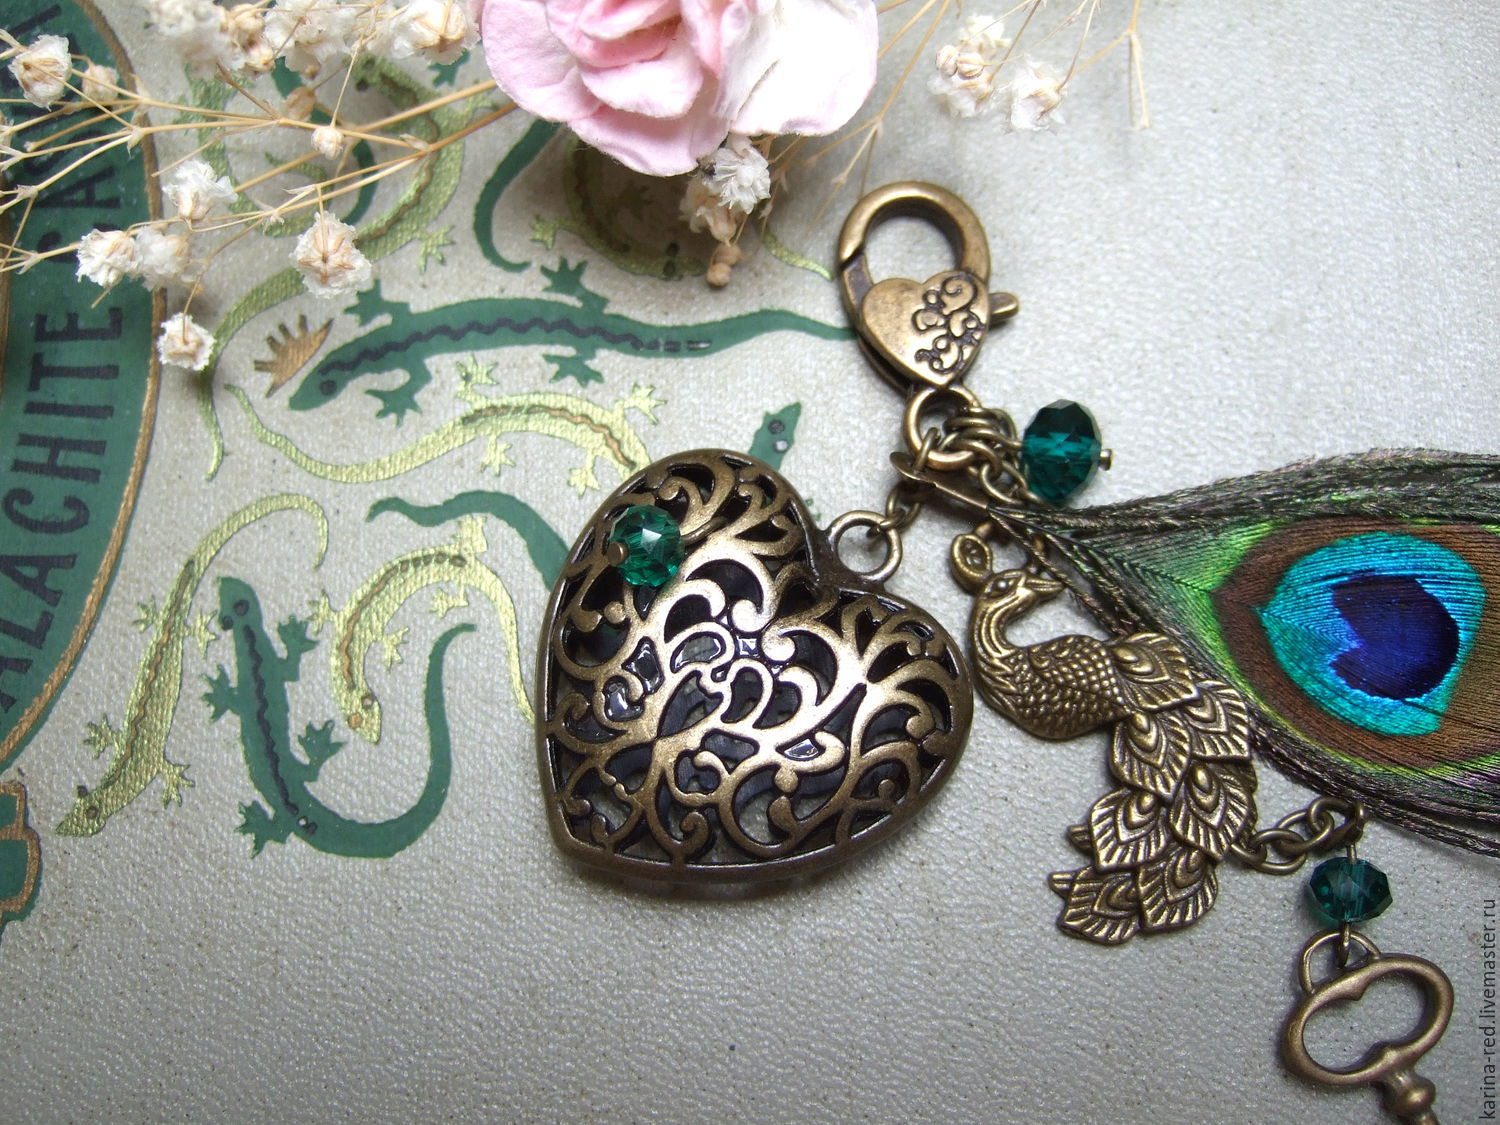 to buy a gift shop gifts key chain for bag keys photo decoration photo shop jewelry keychain openwork heart heart peacock feather boho style accessories vintage style